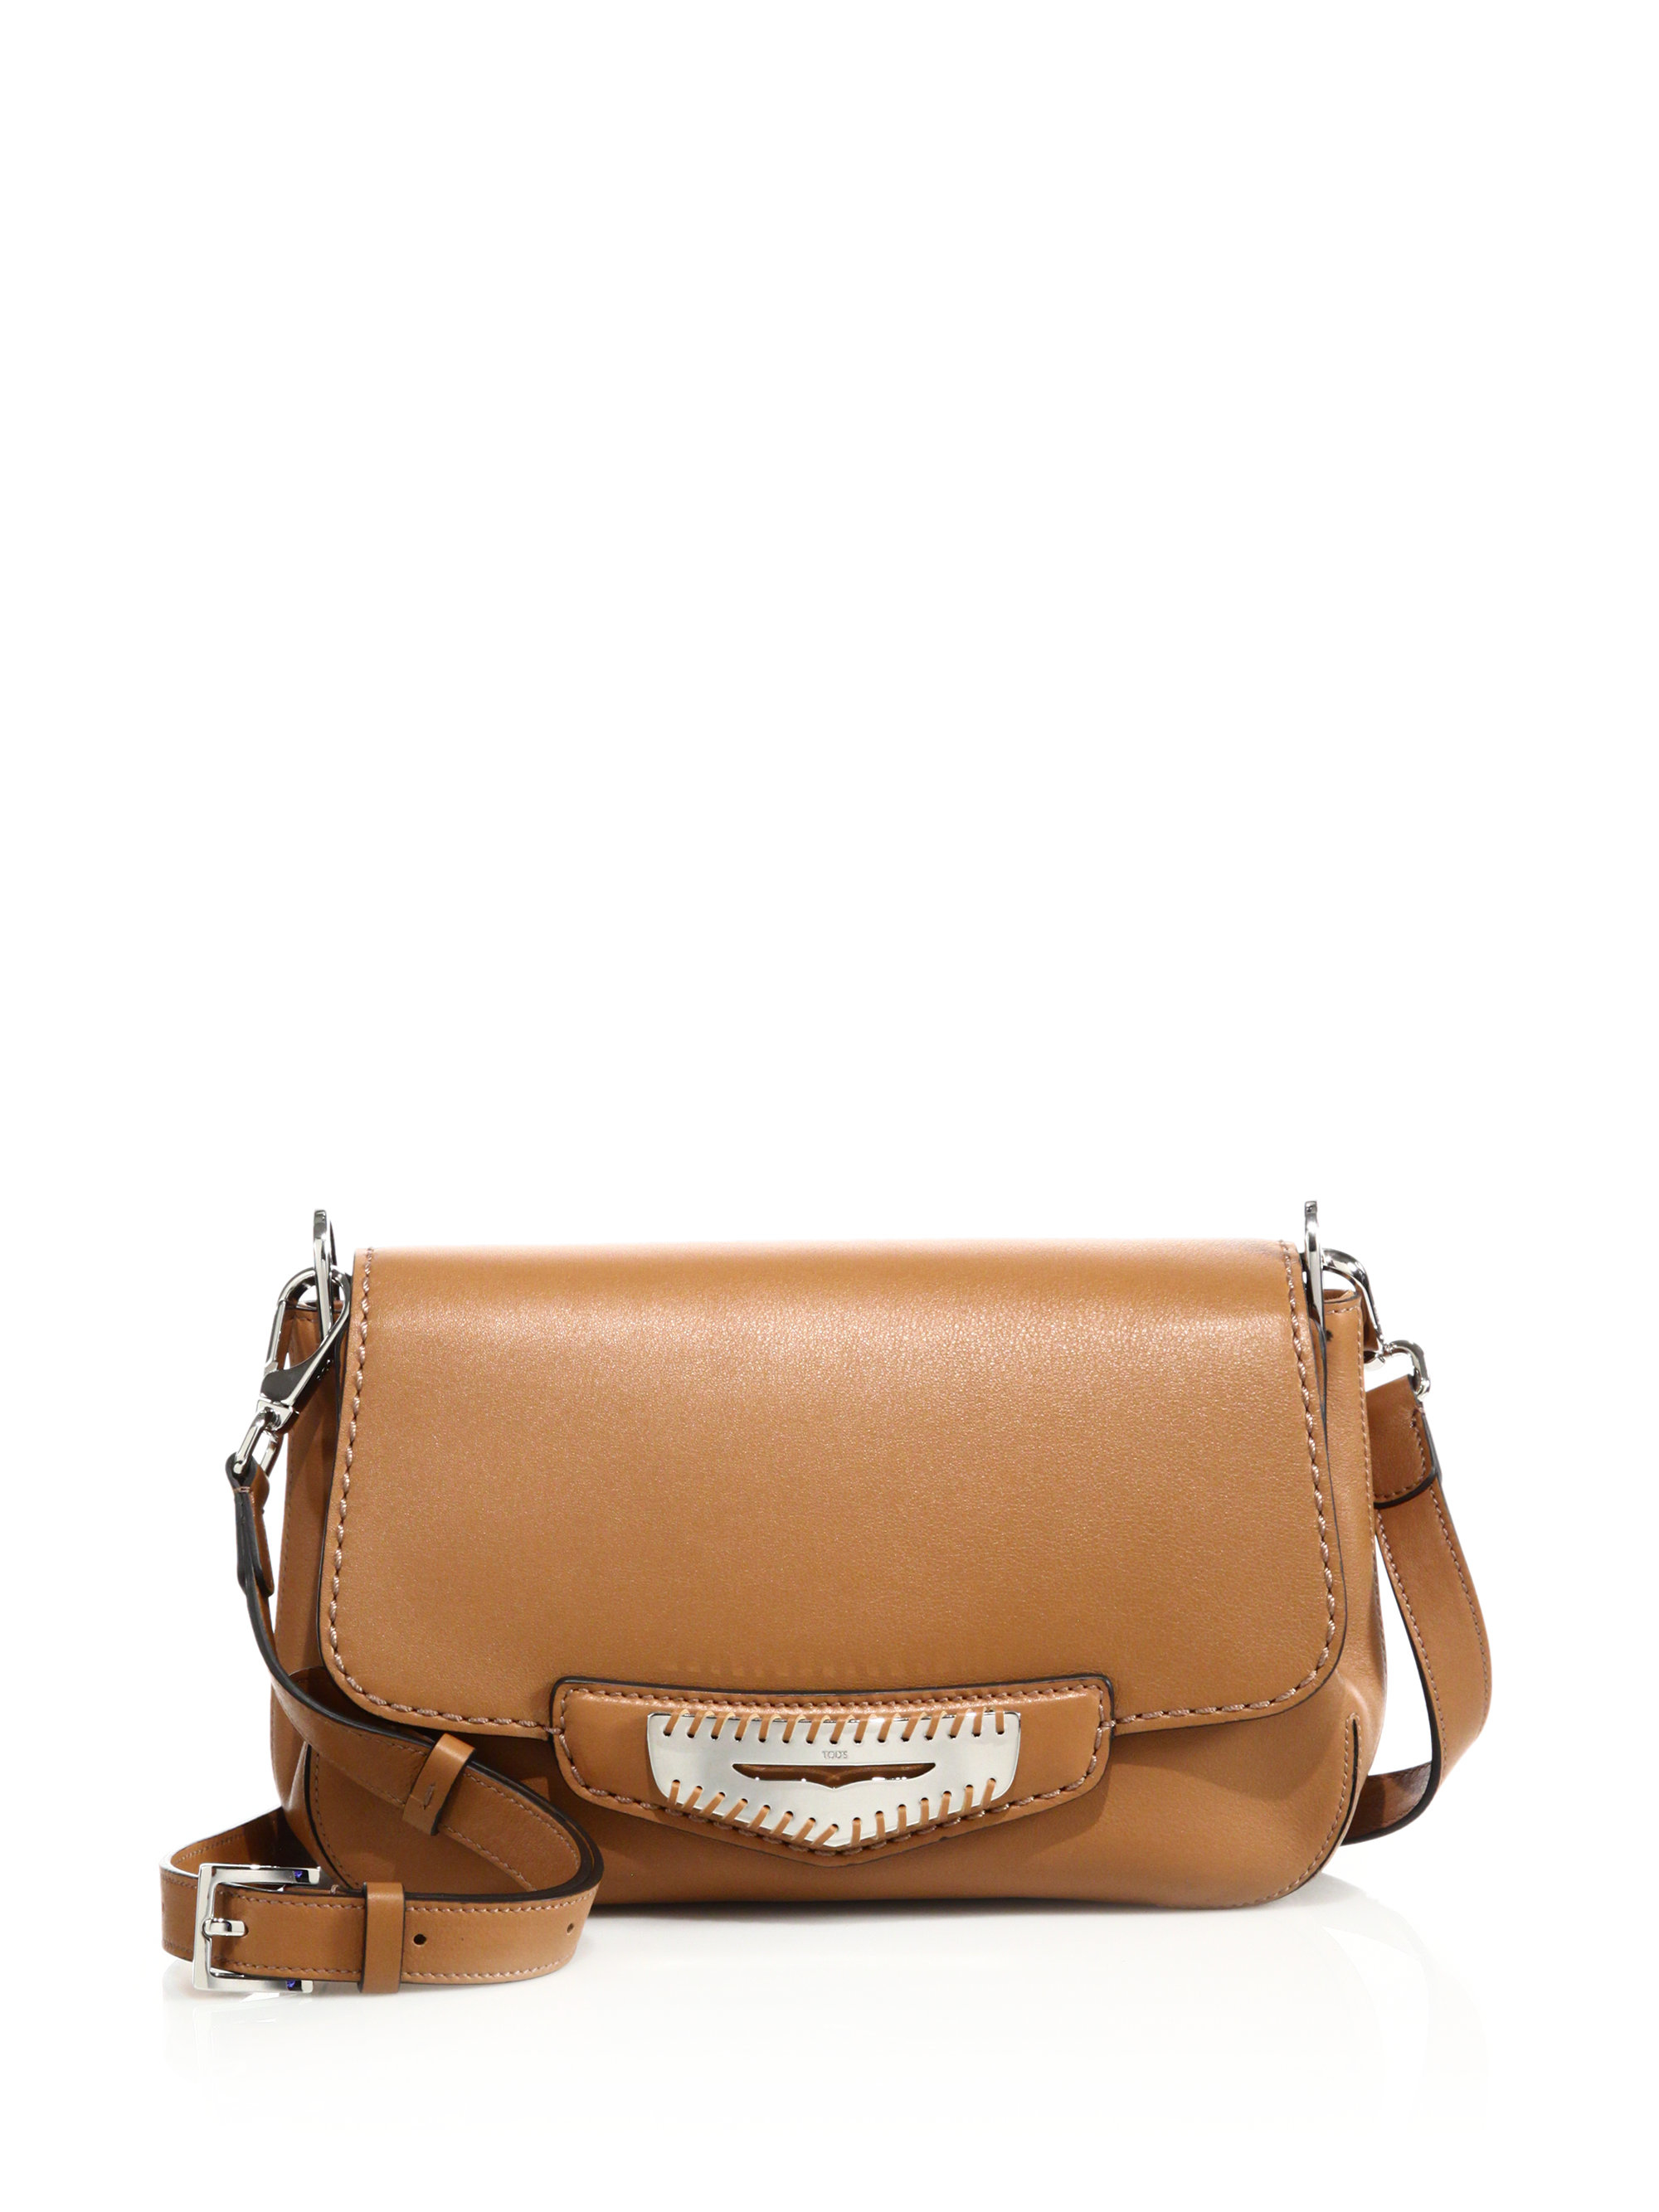 2d929eebcf9d Tod's Whipstitched Leather Crossbody Bag in Brown - Lyst